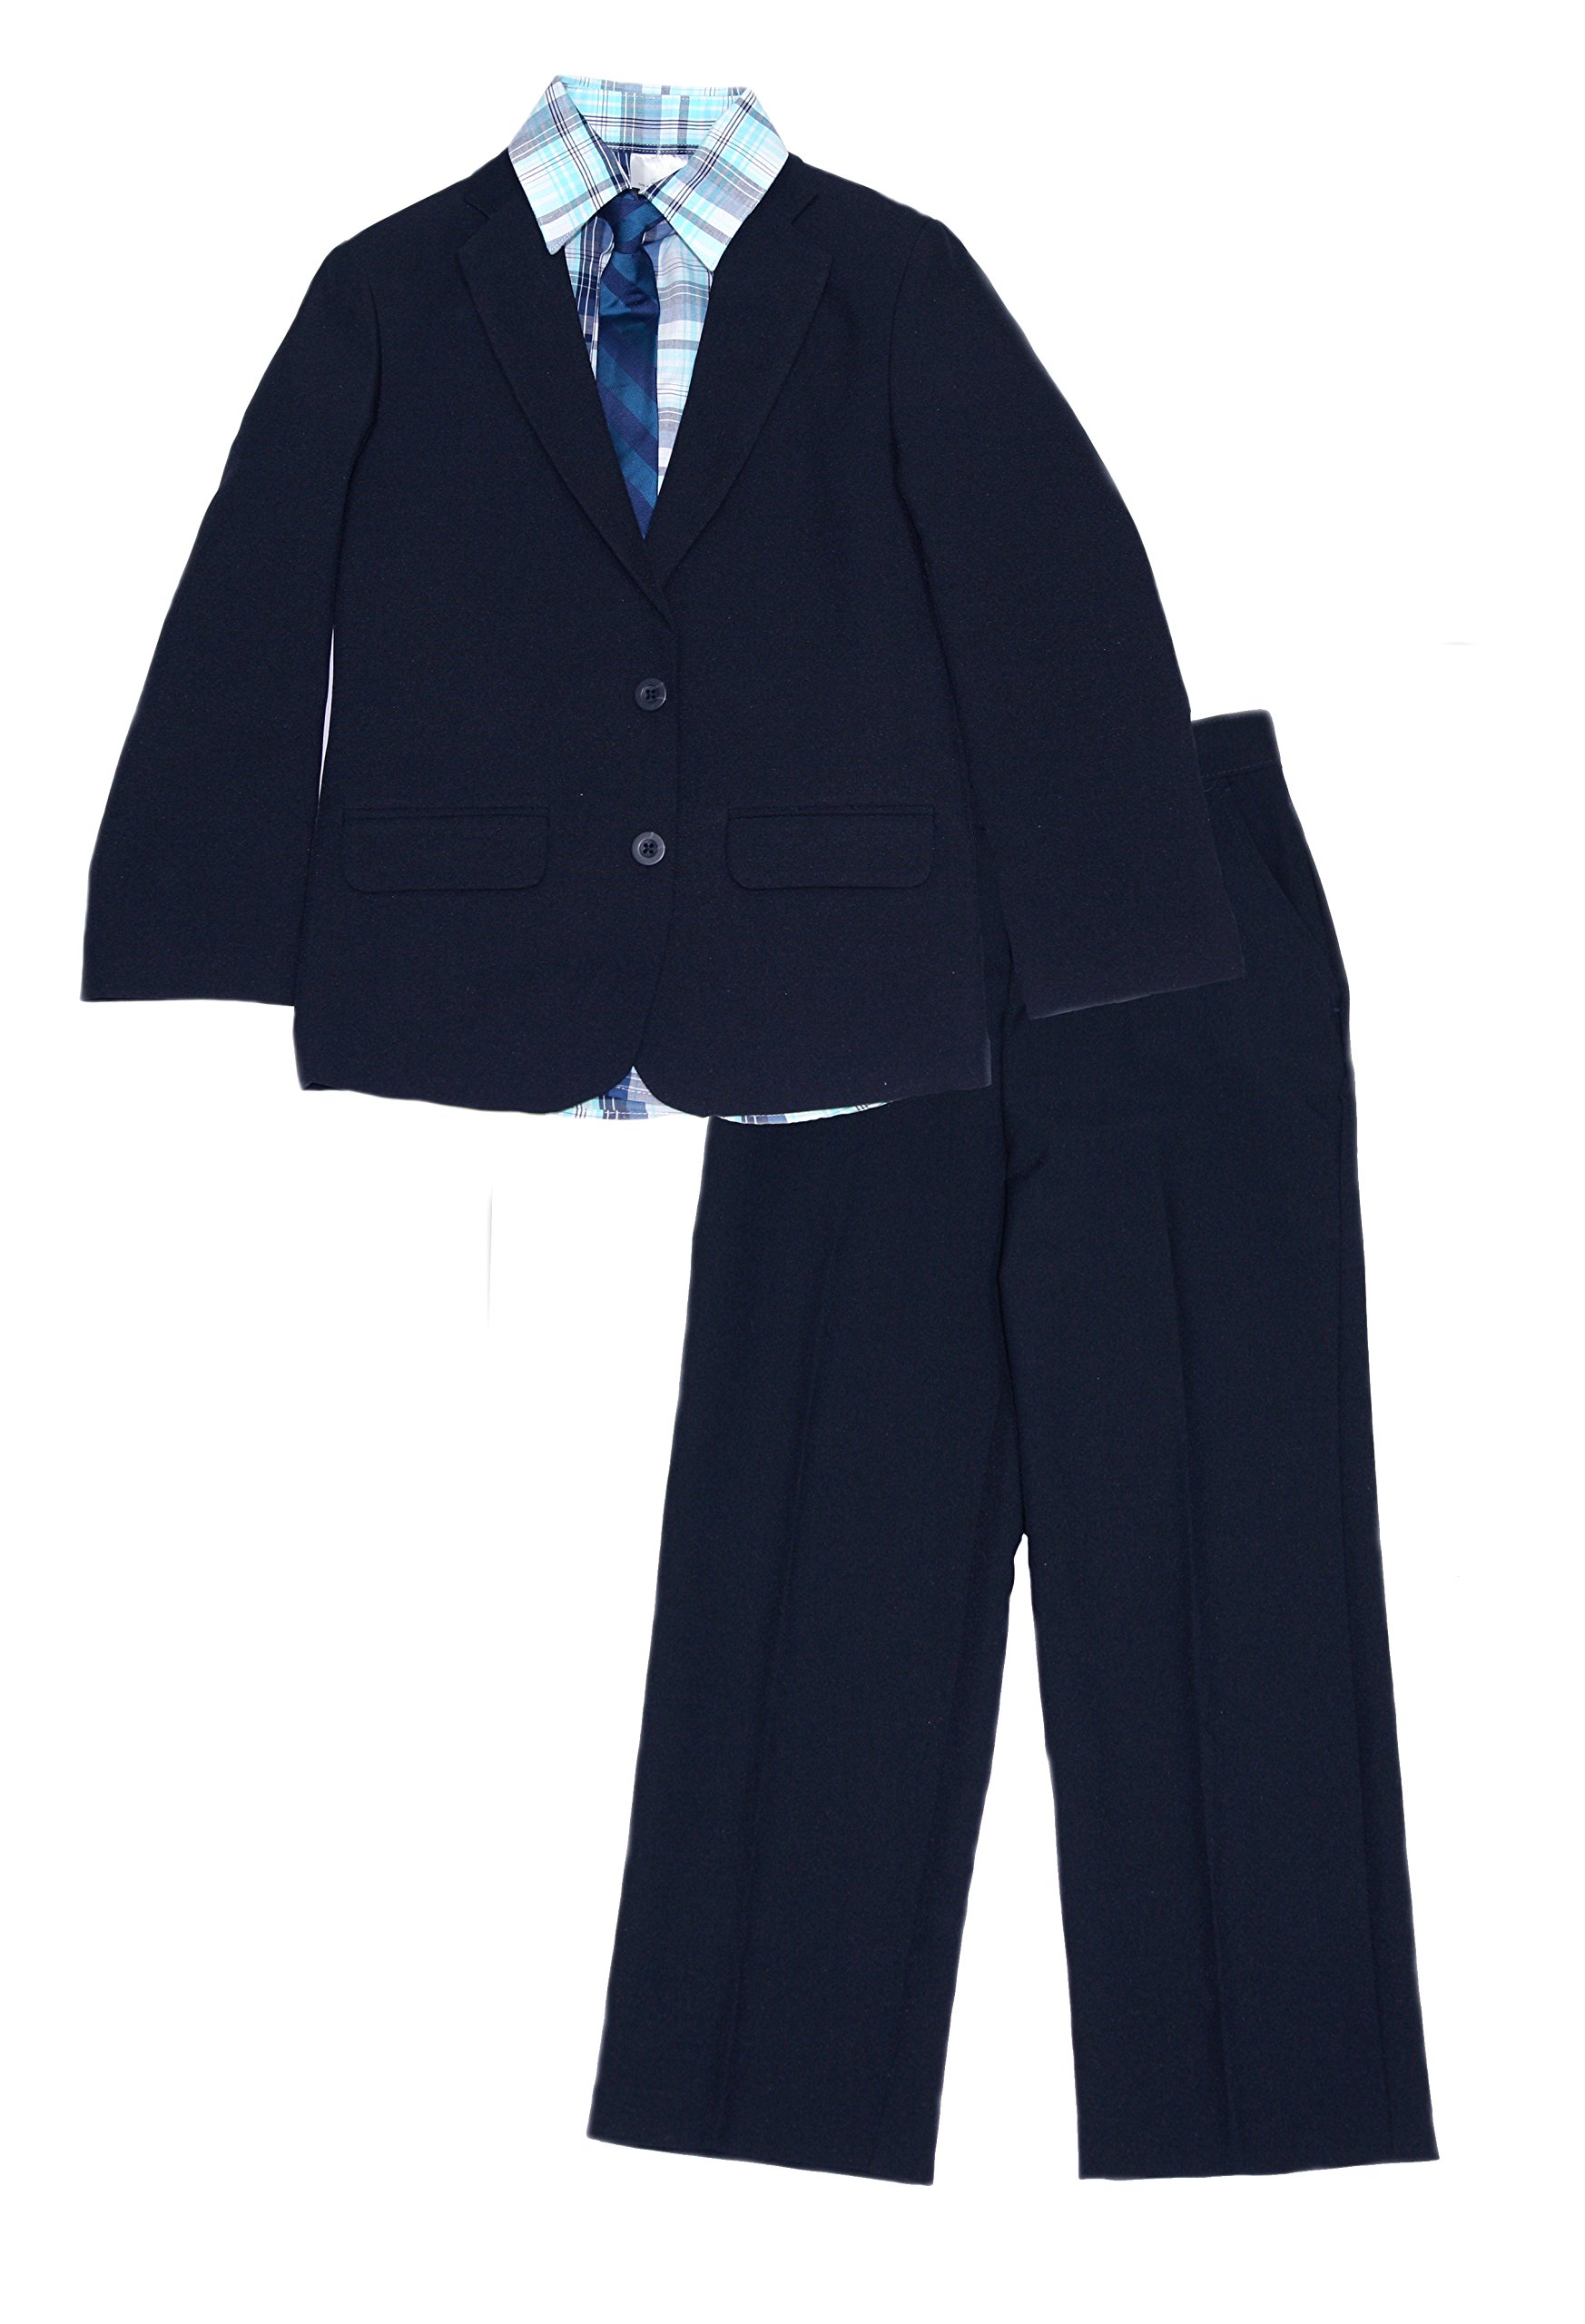 IZOD Big Boys Suit Jacket Blazer 4 Pc Set with Shirt Tie and Pants (Navy, 12)